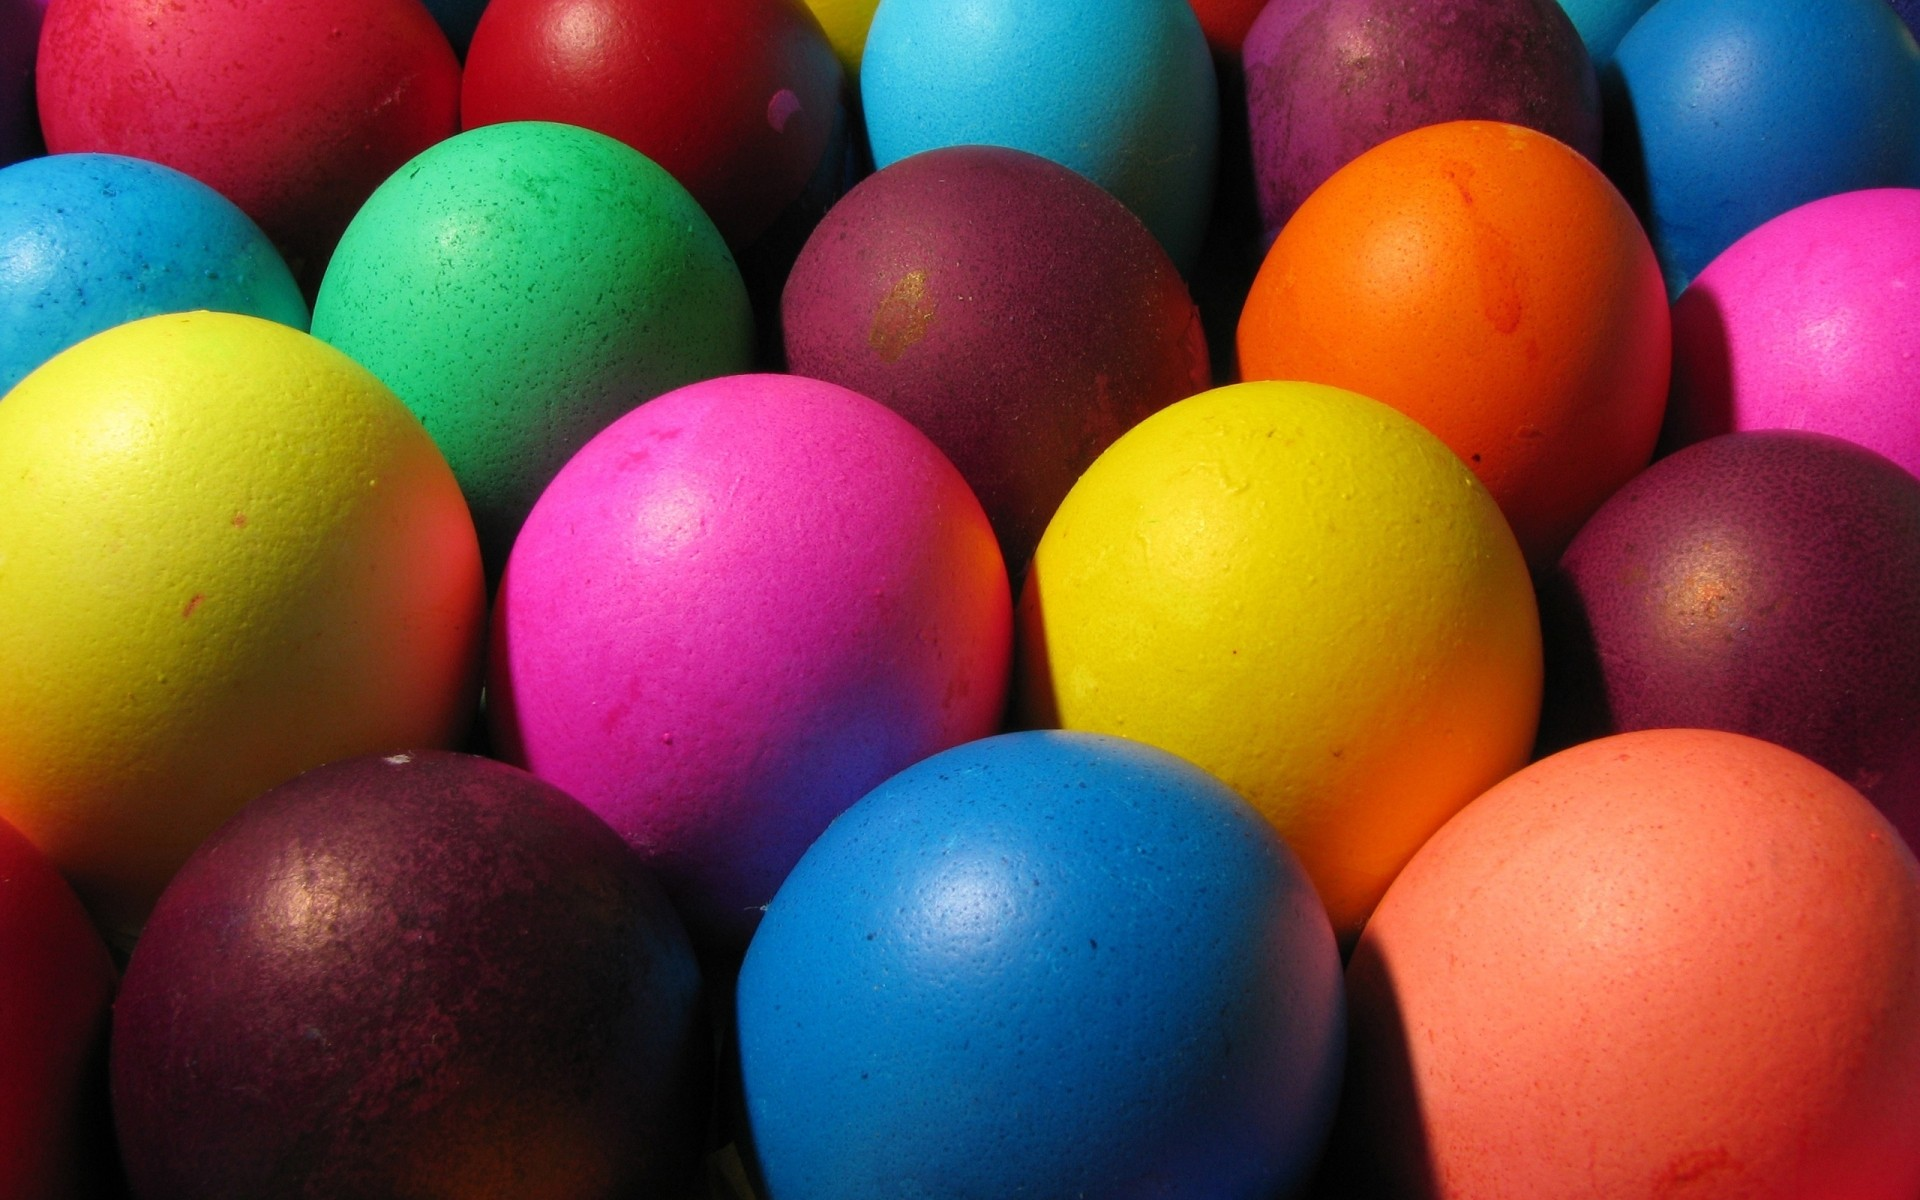 More Easter Eggs Android Wallpapers For Free